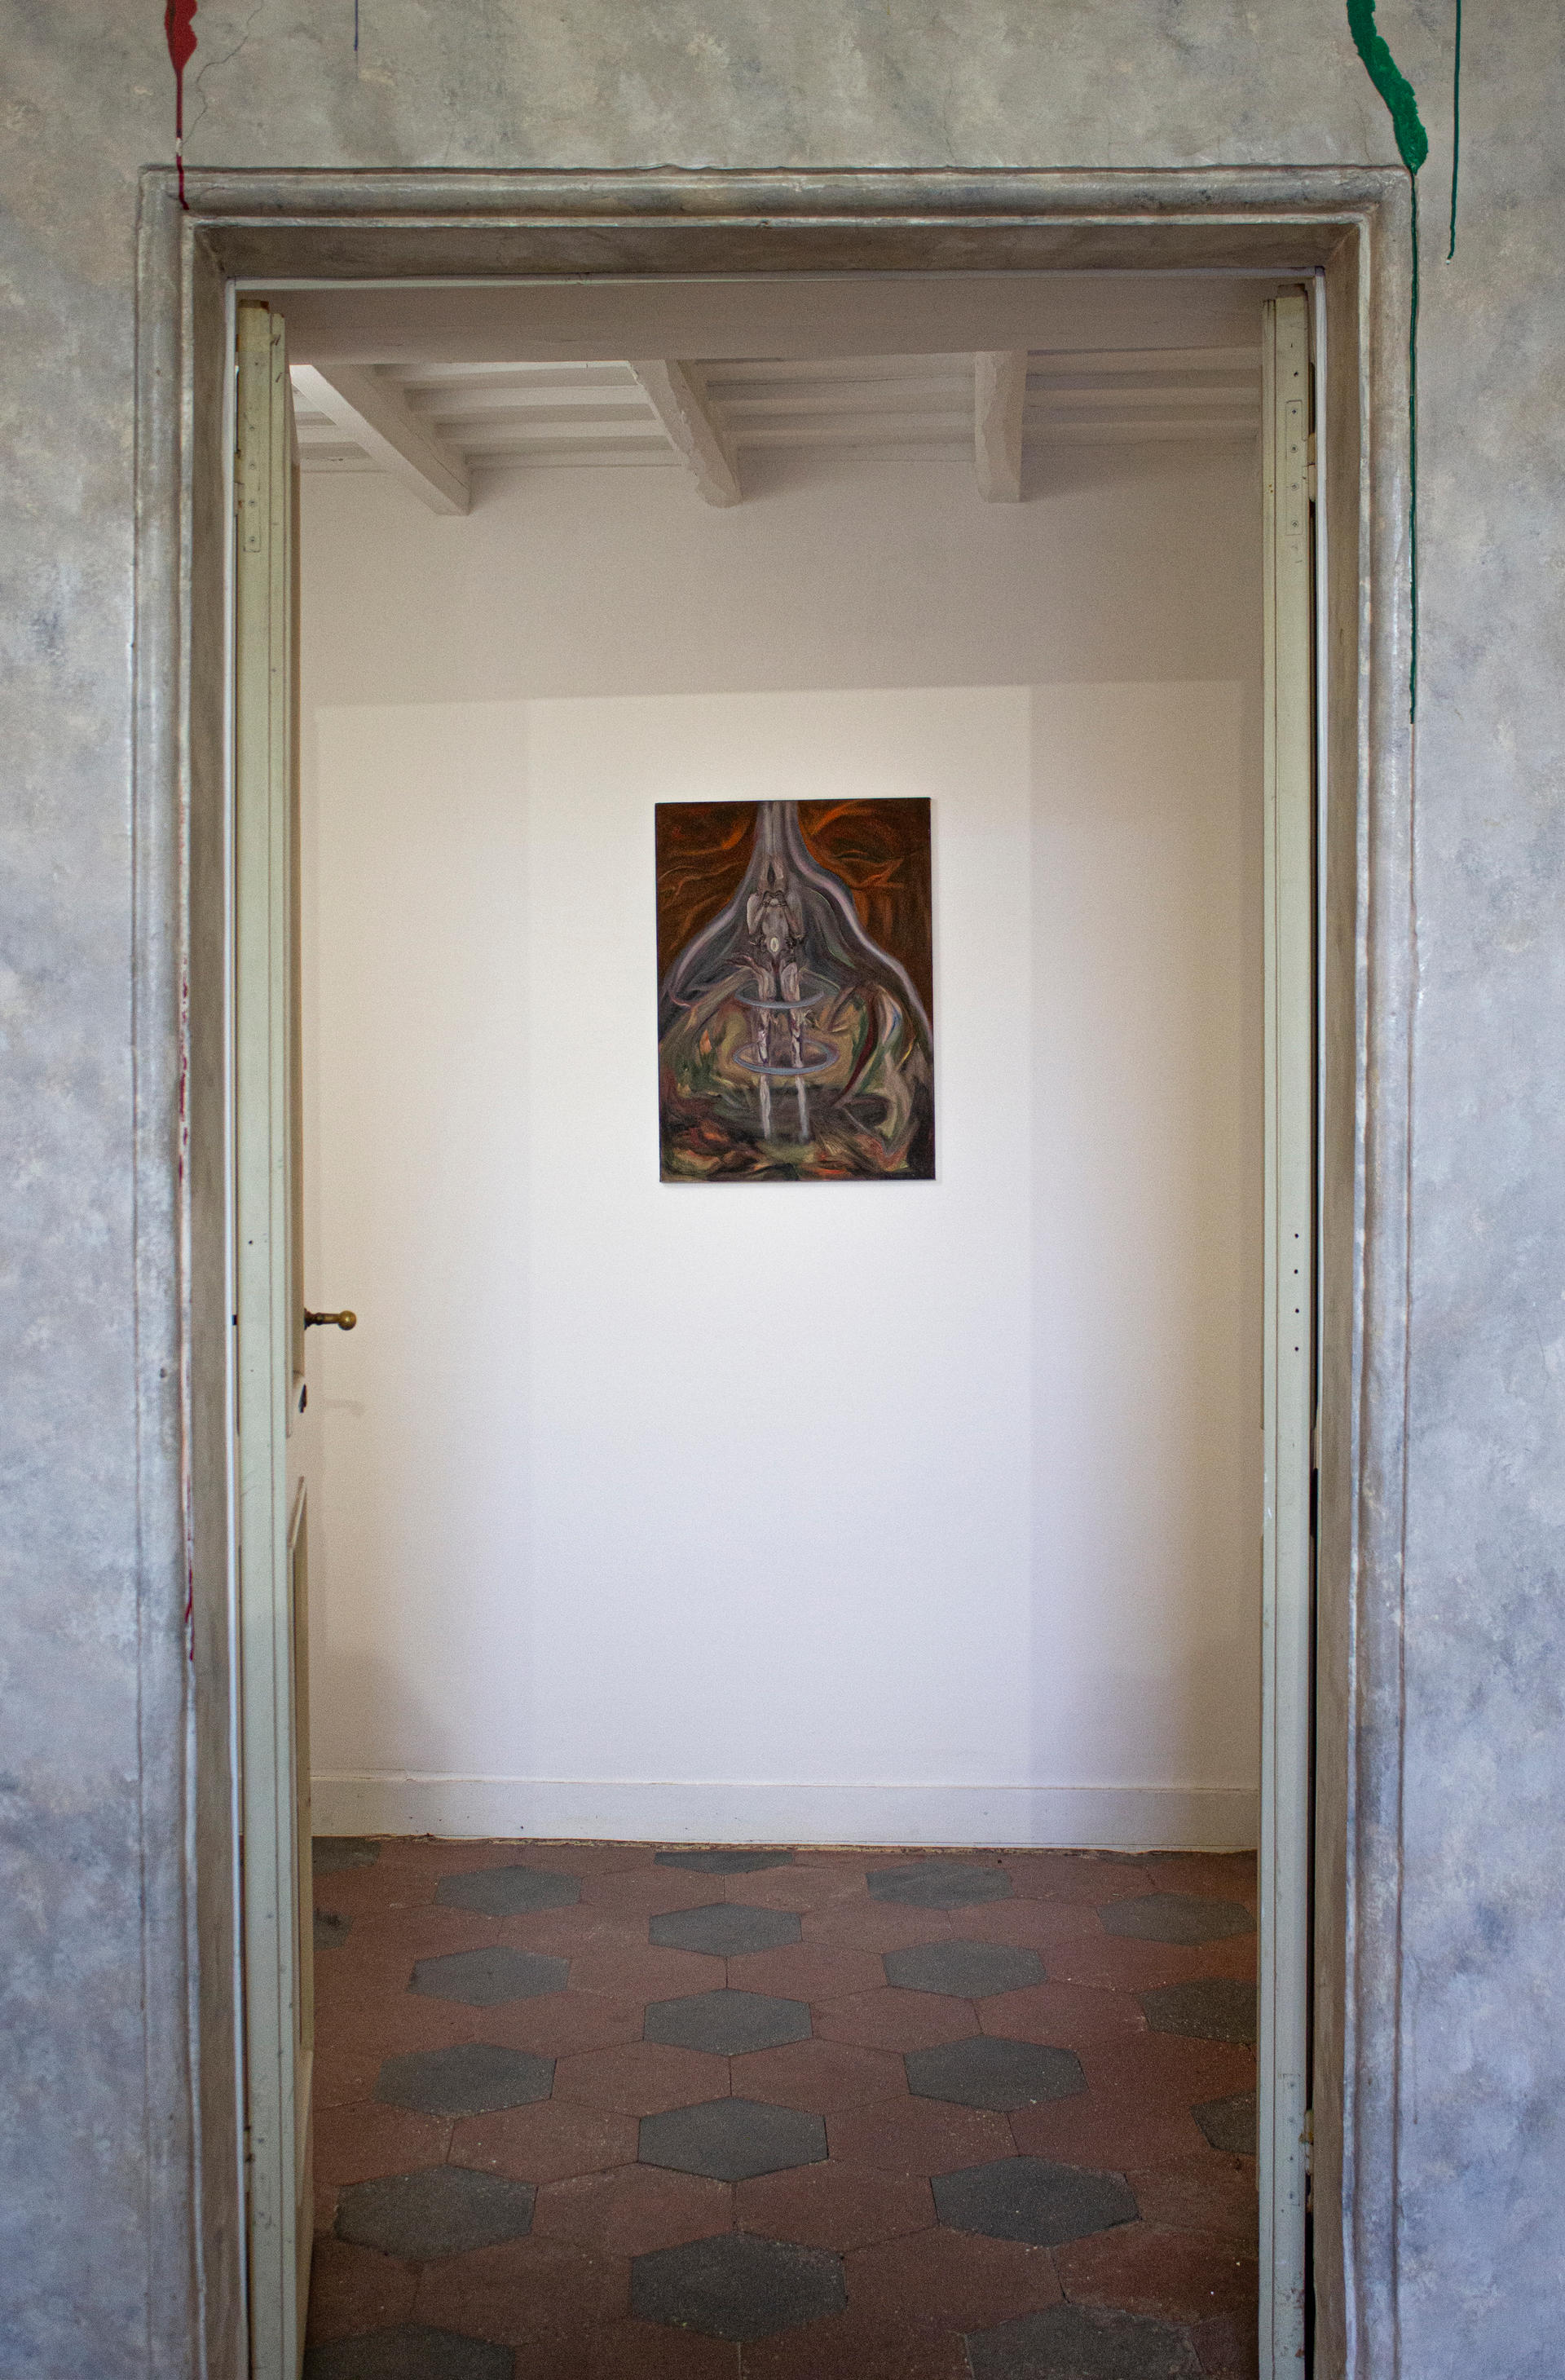 """Alessandro Giannì, """"untitled"""", 2017, oil on canvas, 50 x 70 cm"""